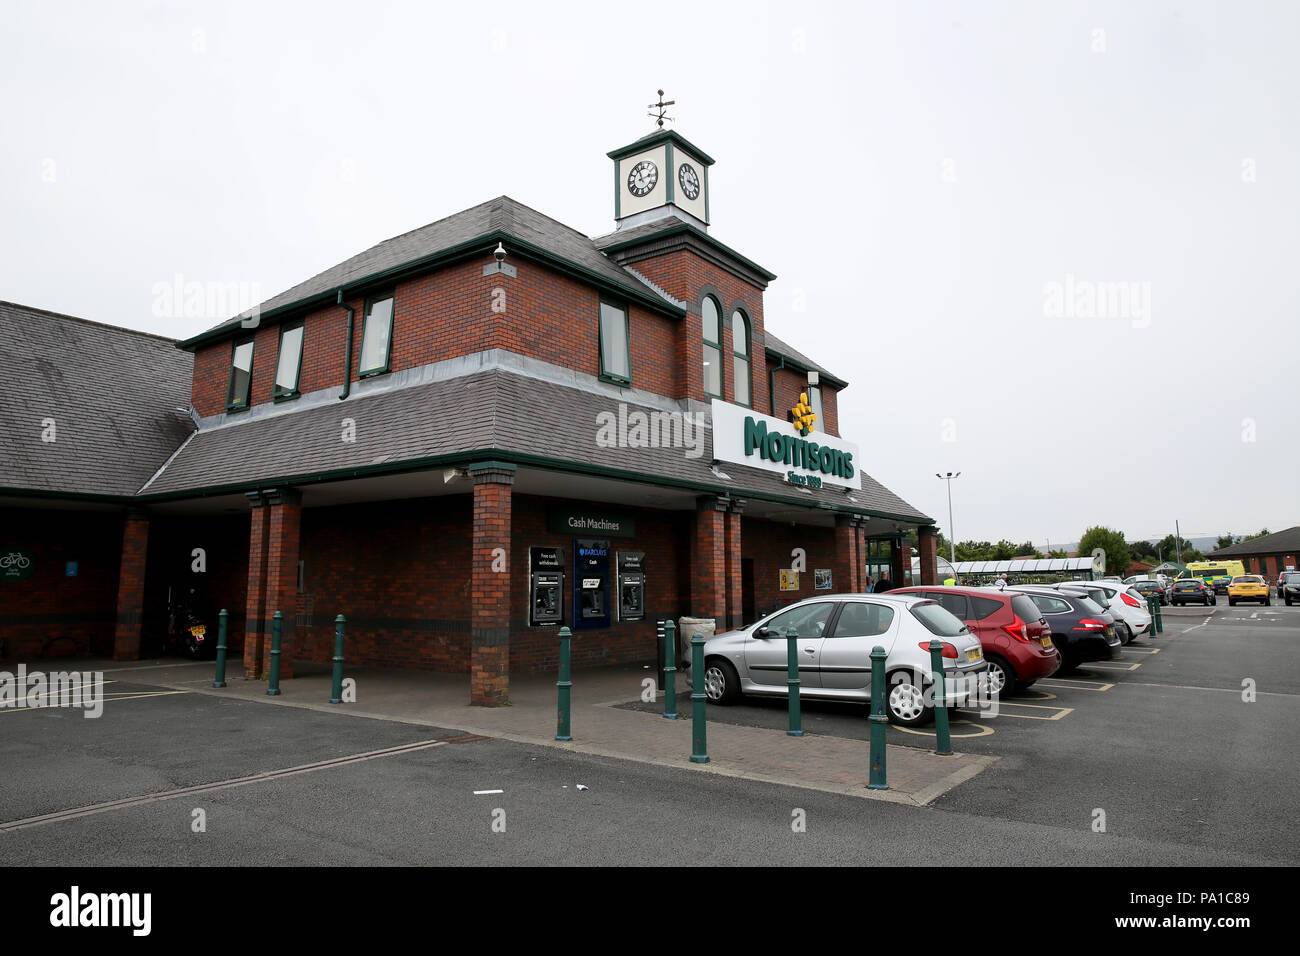 Rochdale, UK. 20th July 2018. Morrisons supermarkets have announced that they will be catering for autistic customers by holding 'quieter hour' sessions on a Saturday morning between 9am and 10am.  All 439 UK stores will take part where staff  will avoid using the tannoy system, lights will be dimmed and music turned of.  Rochdale,20th July, 2018 (C)Barbara Cook/Alamy Live News - Stock Image